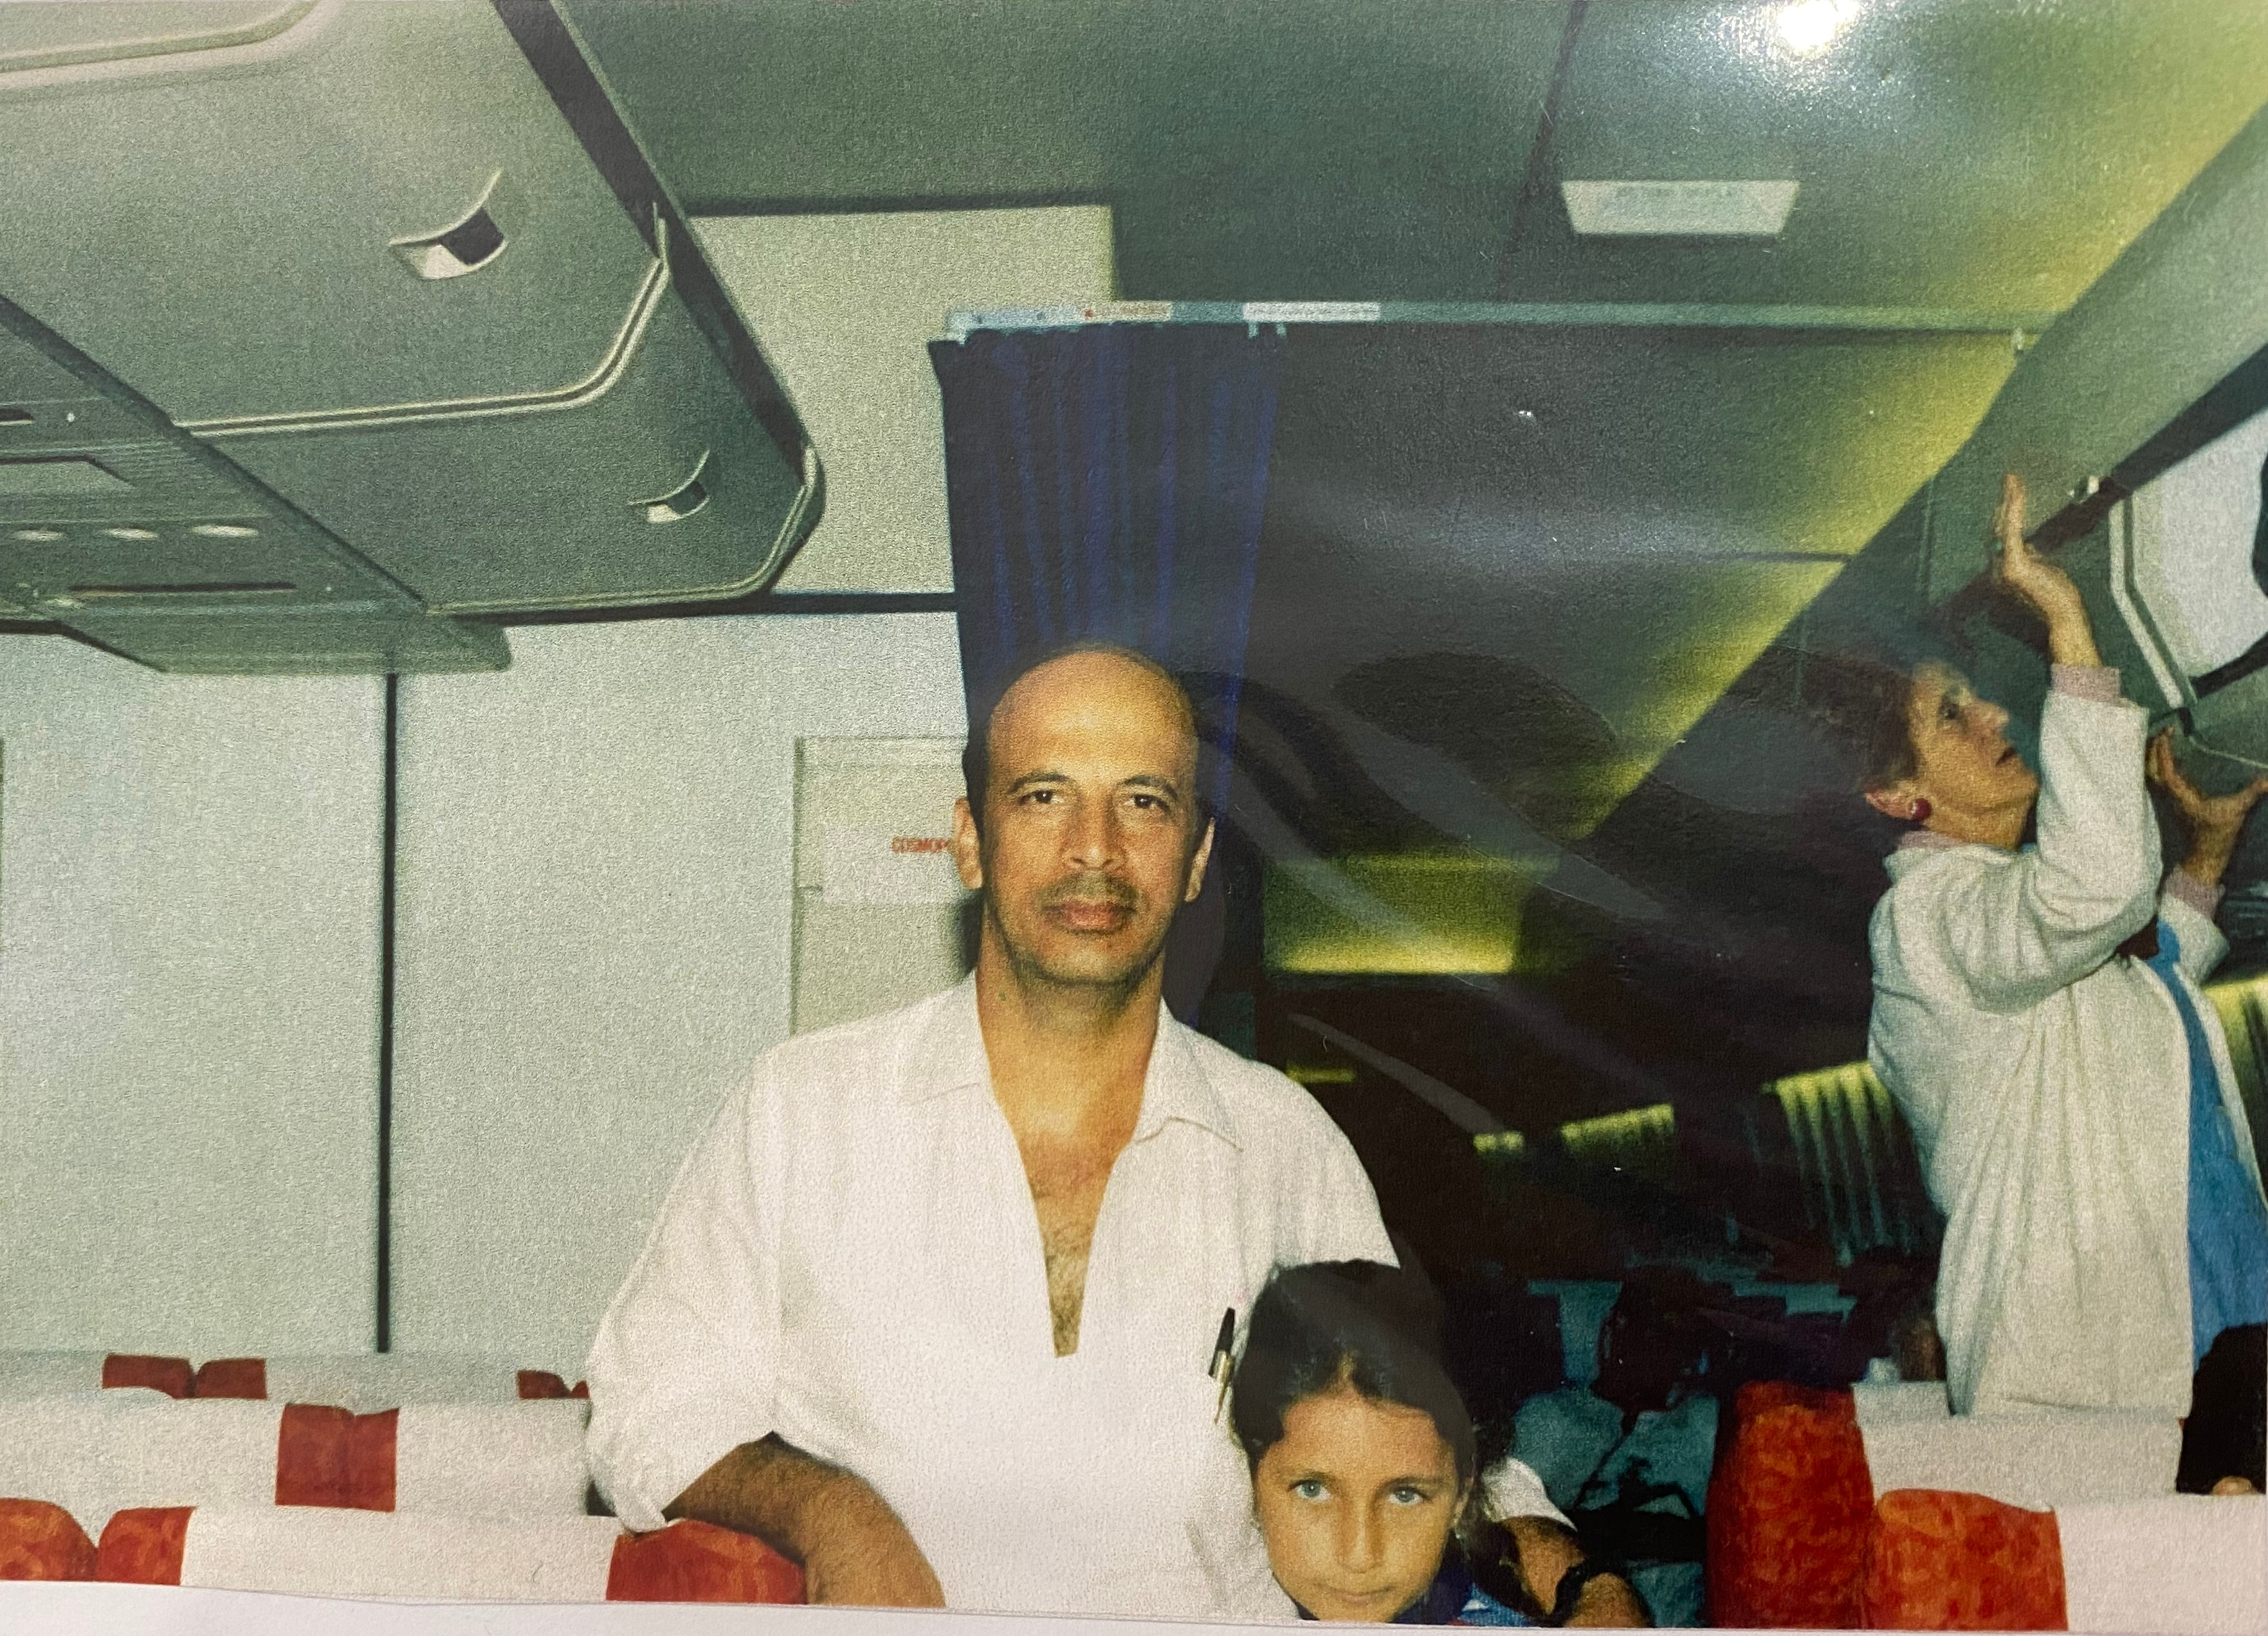 Ghania and her father on board the plane from Cyrus to Sydney in 1985.